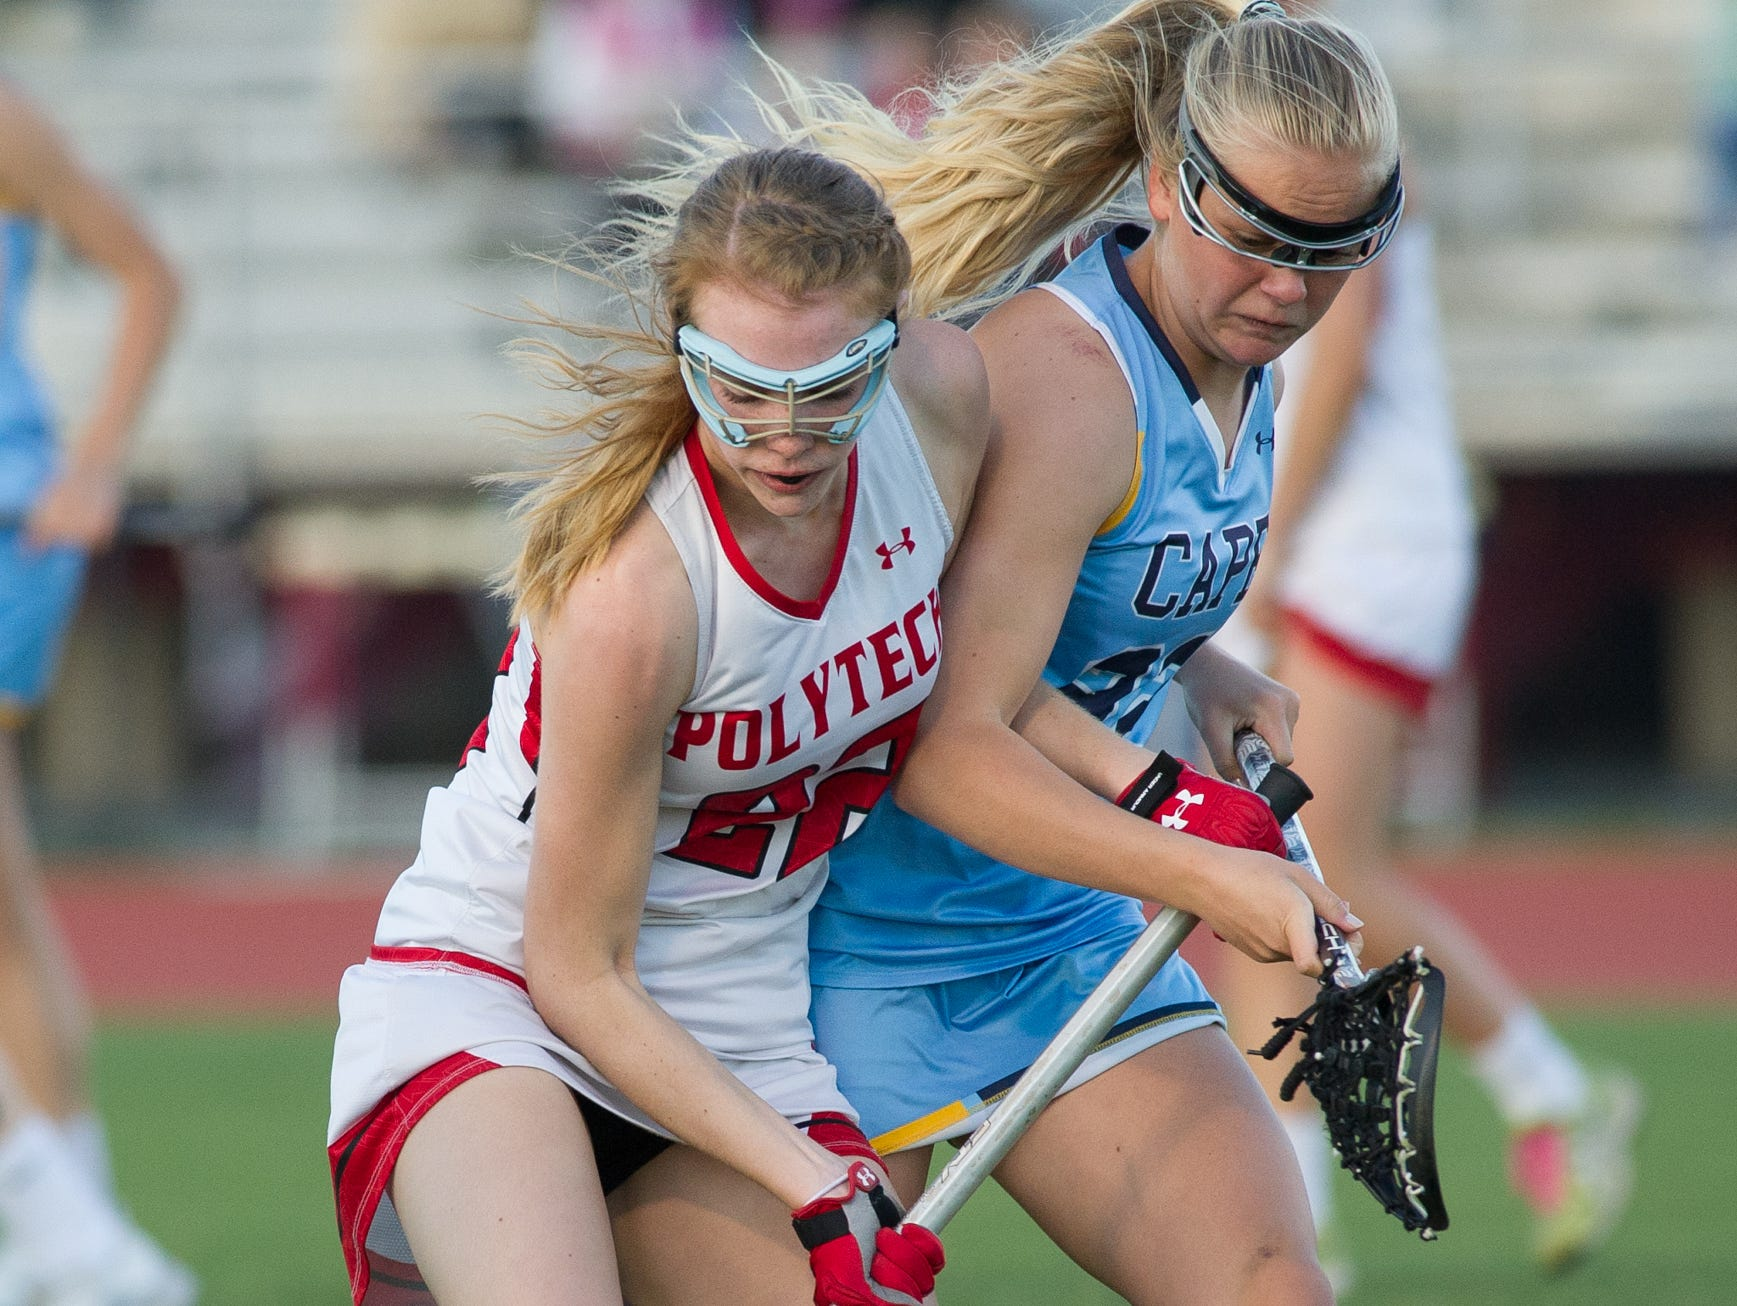 Polytech's Alison McKay (22), left and Cape Henlopen's Evelyn Shoop (22) battle for the ball during the second half of play.